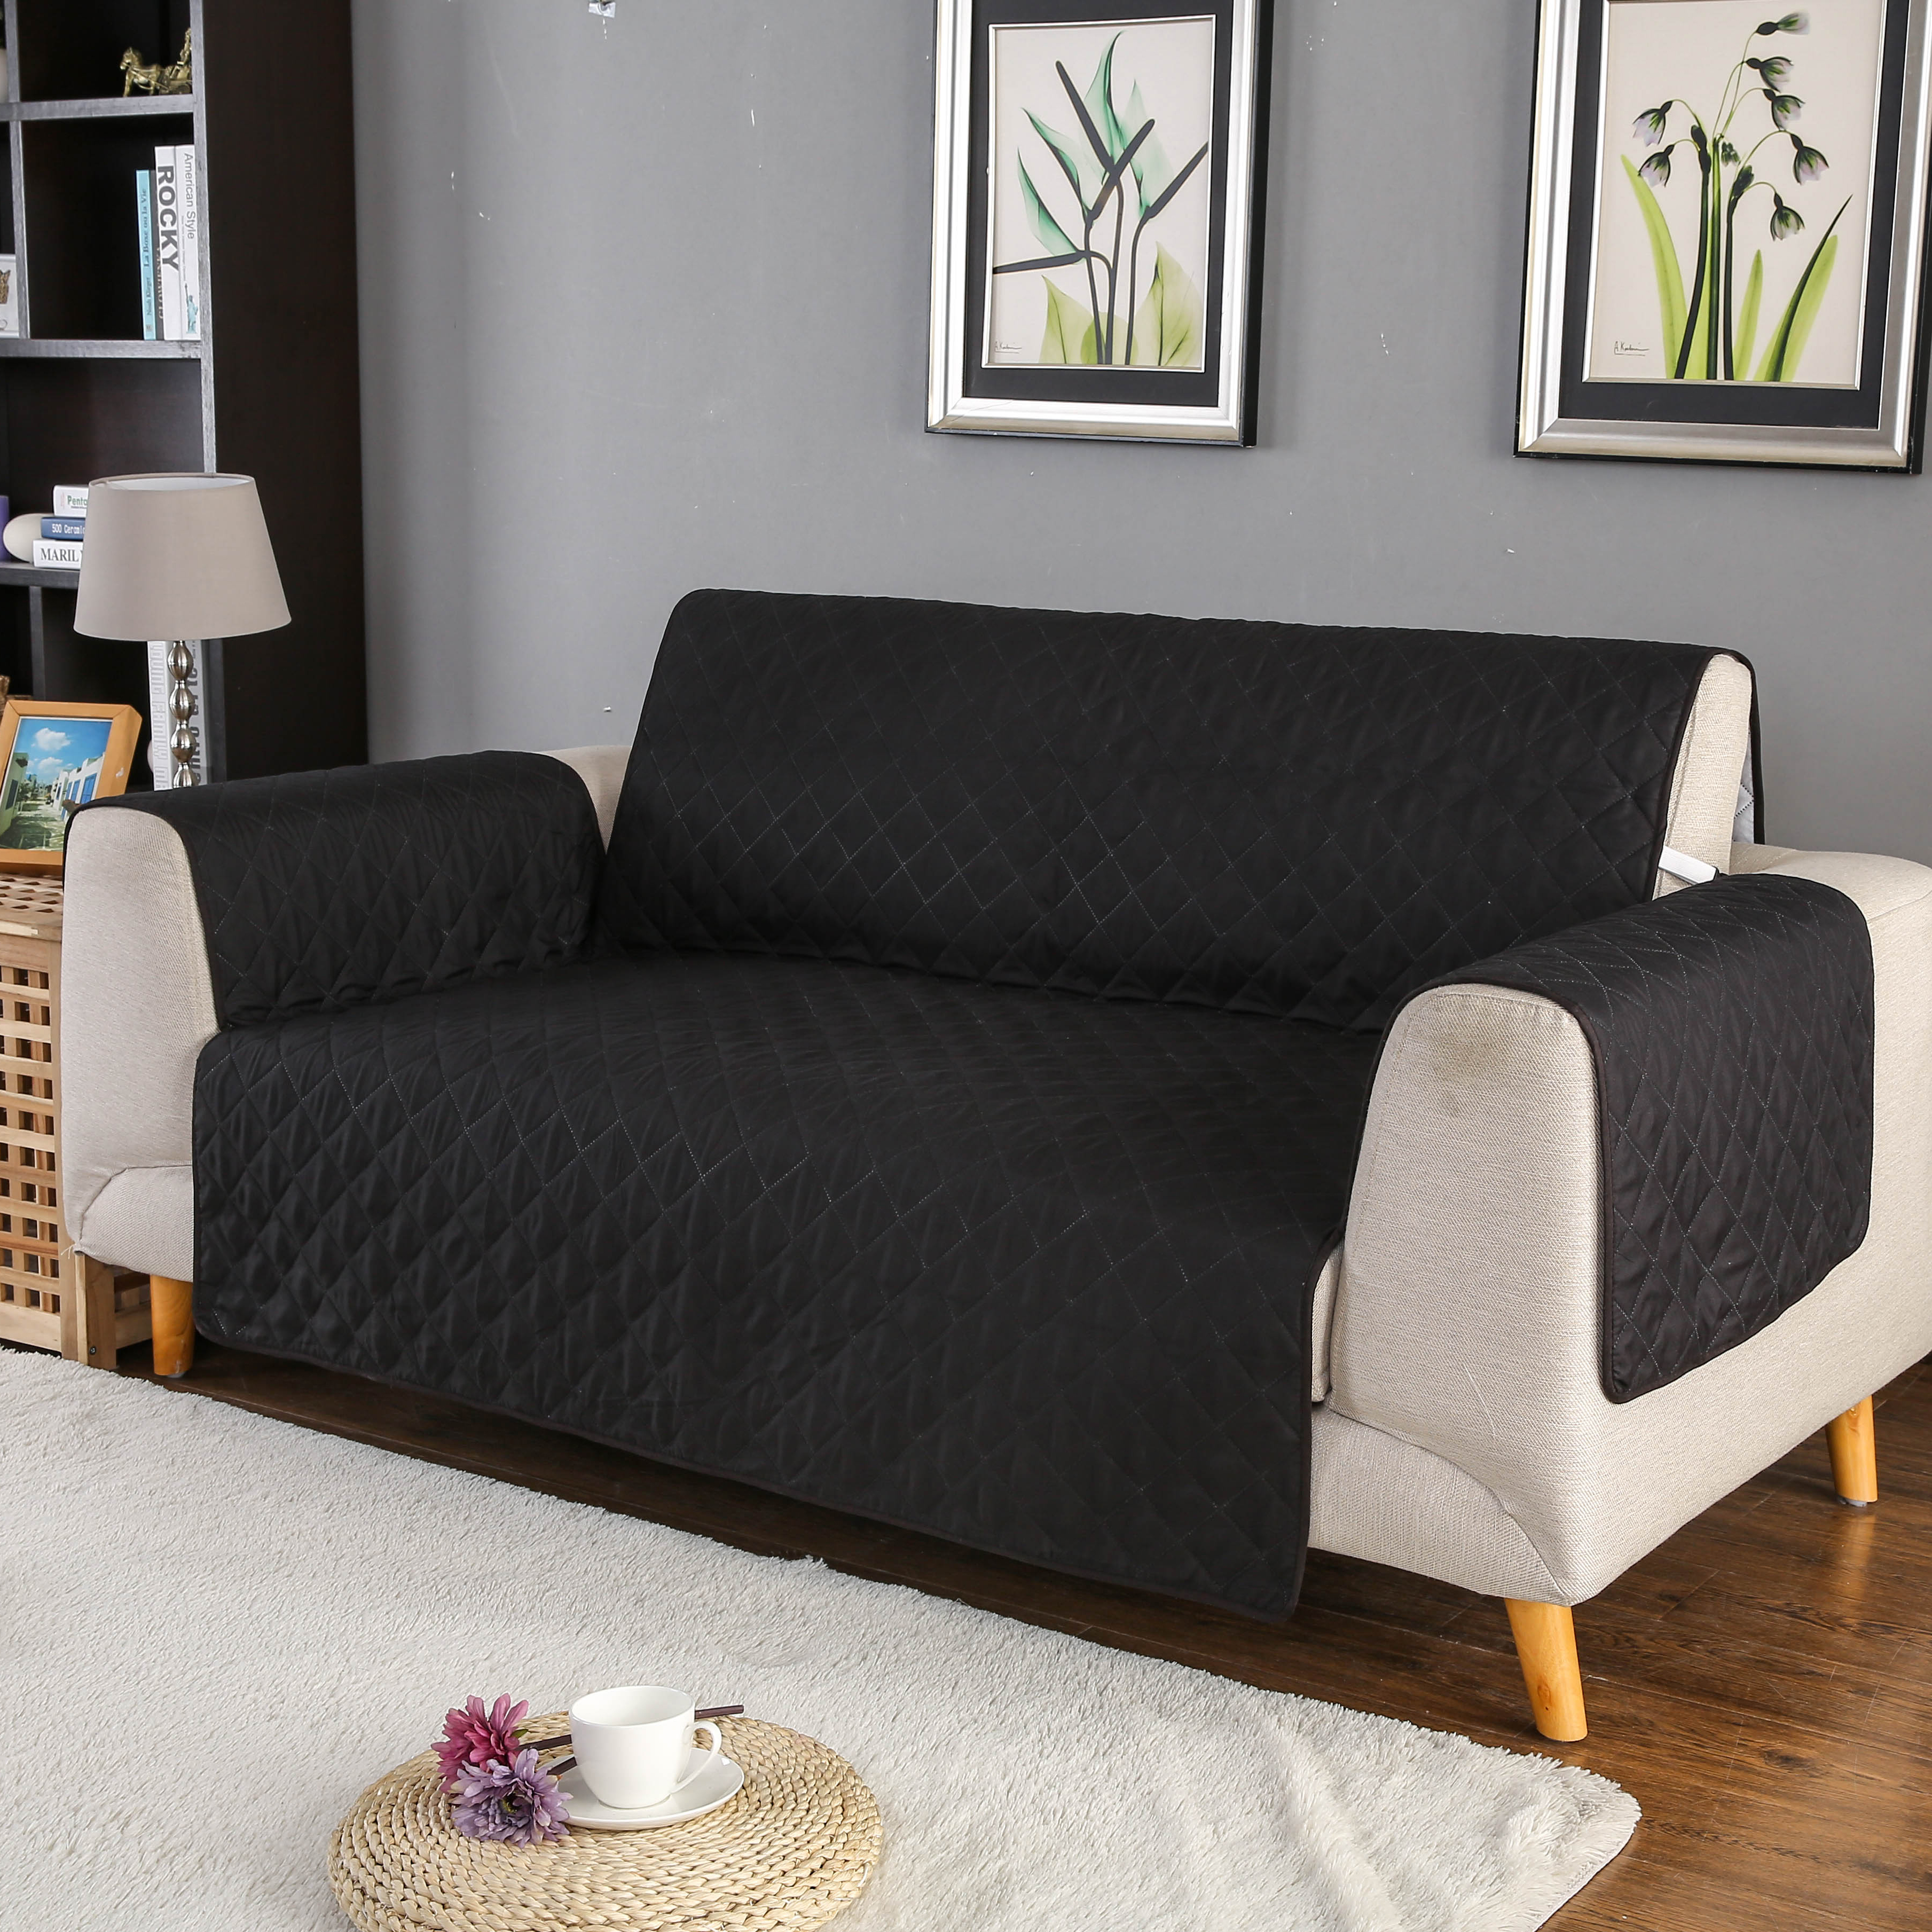 Protector Couch Cover Armchair Sofa Bed